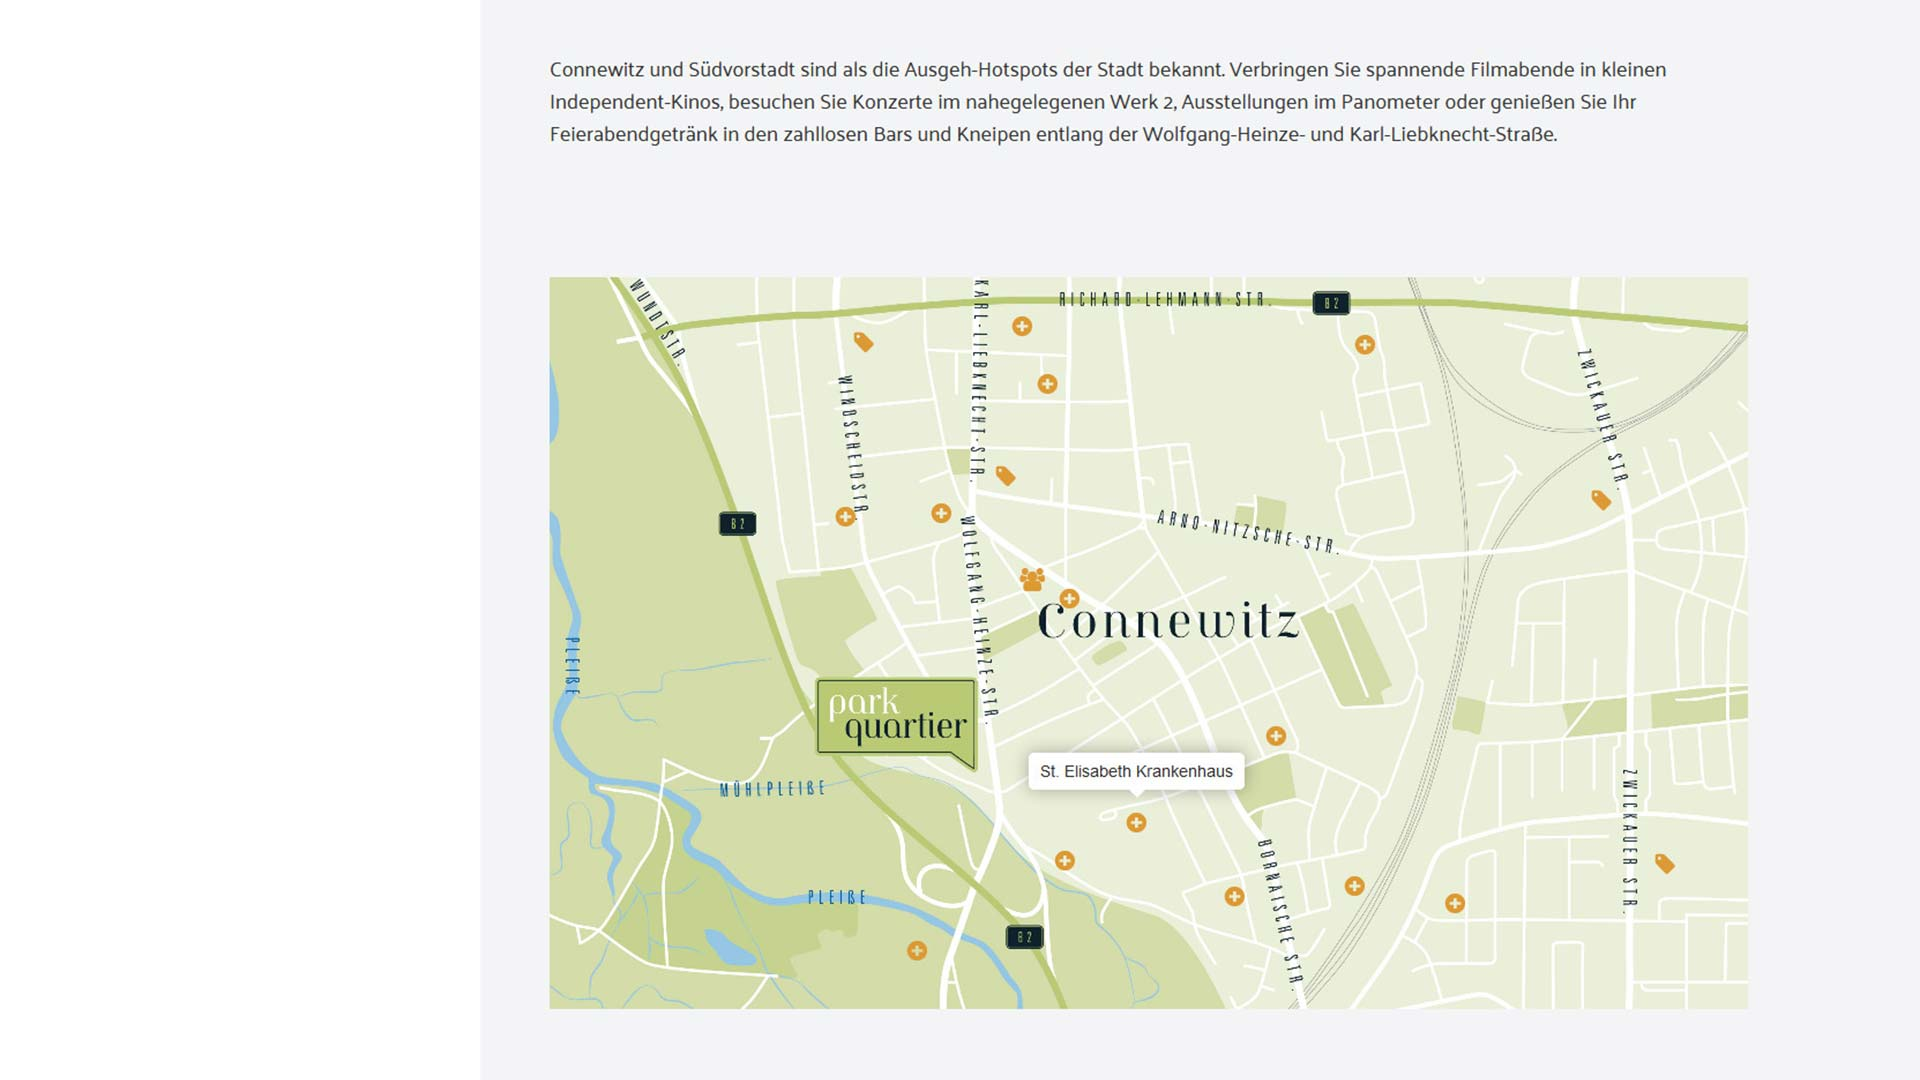 Immobilienmarketing Parkquartier Webseite